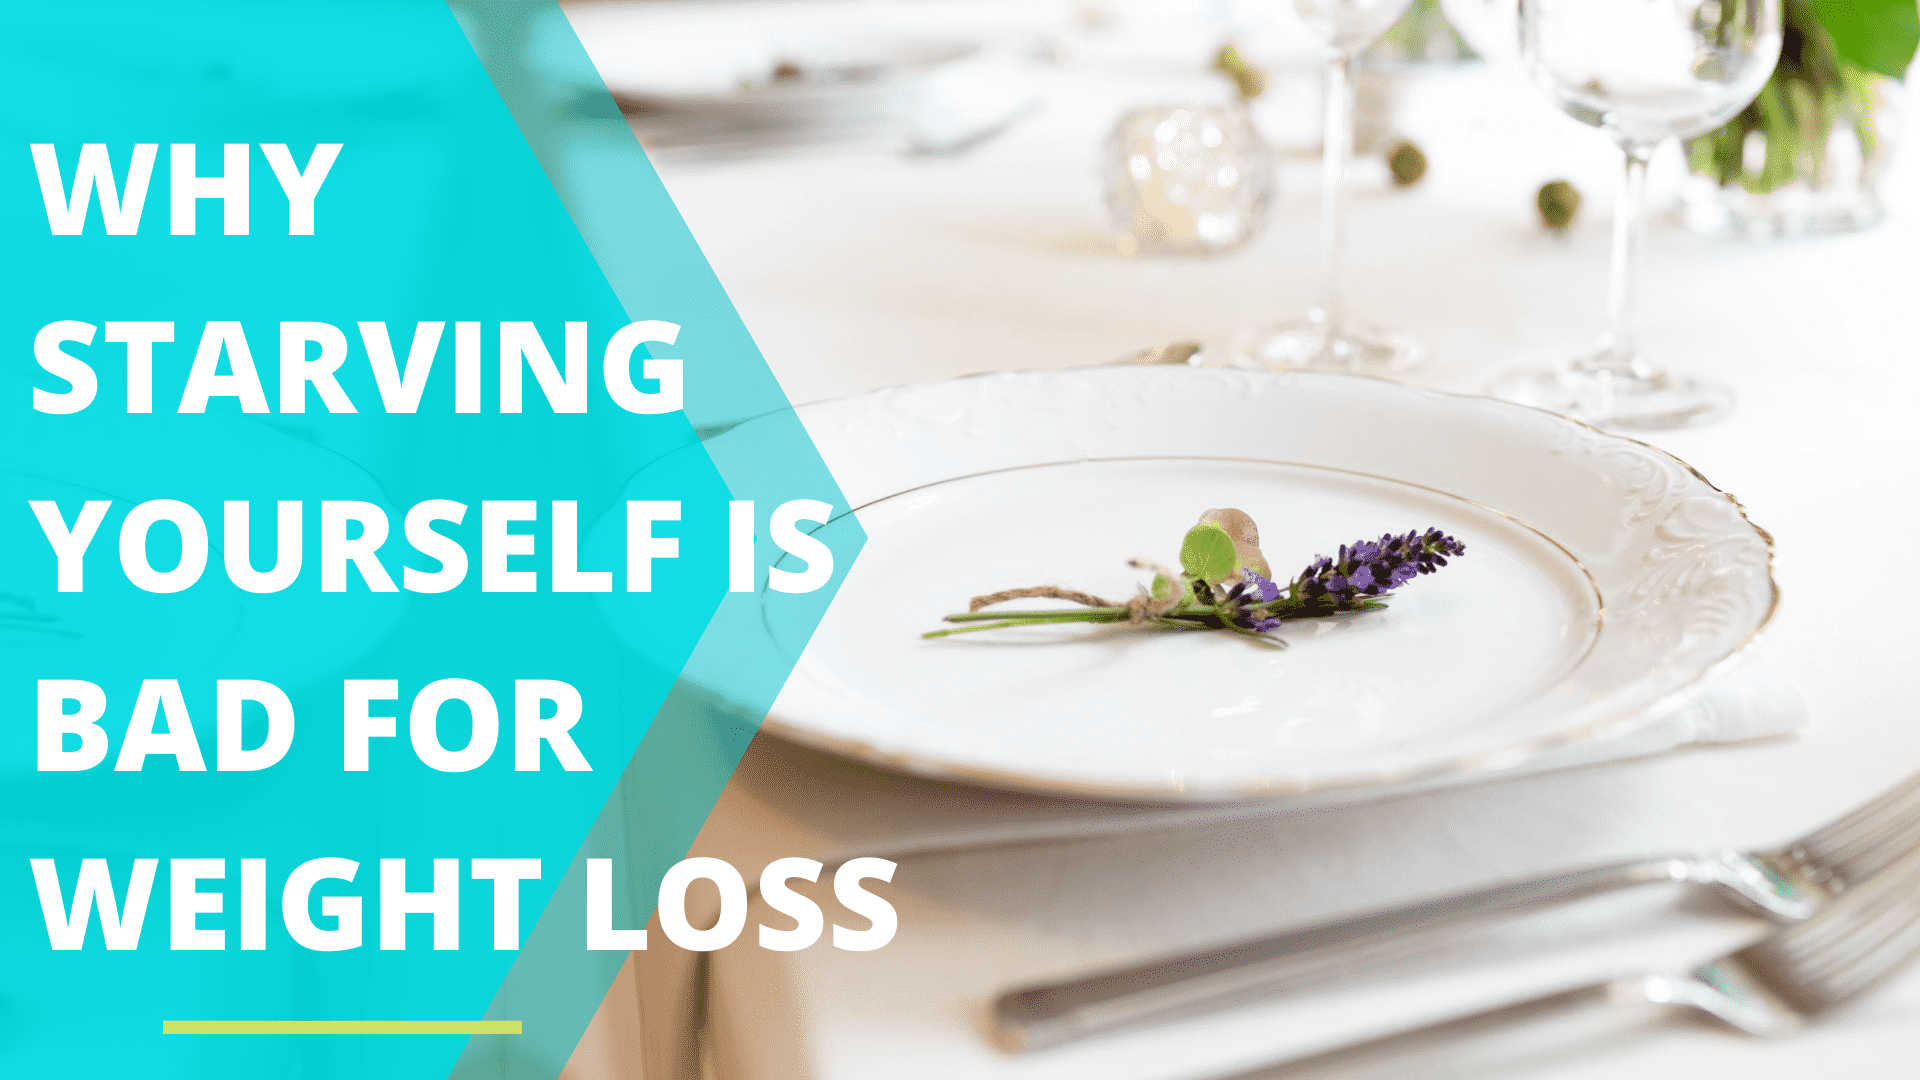 Why Starving Yourself Is Bad For Weight Loss